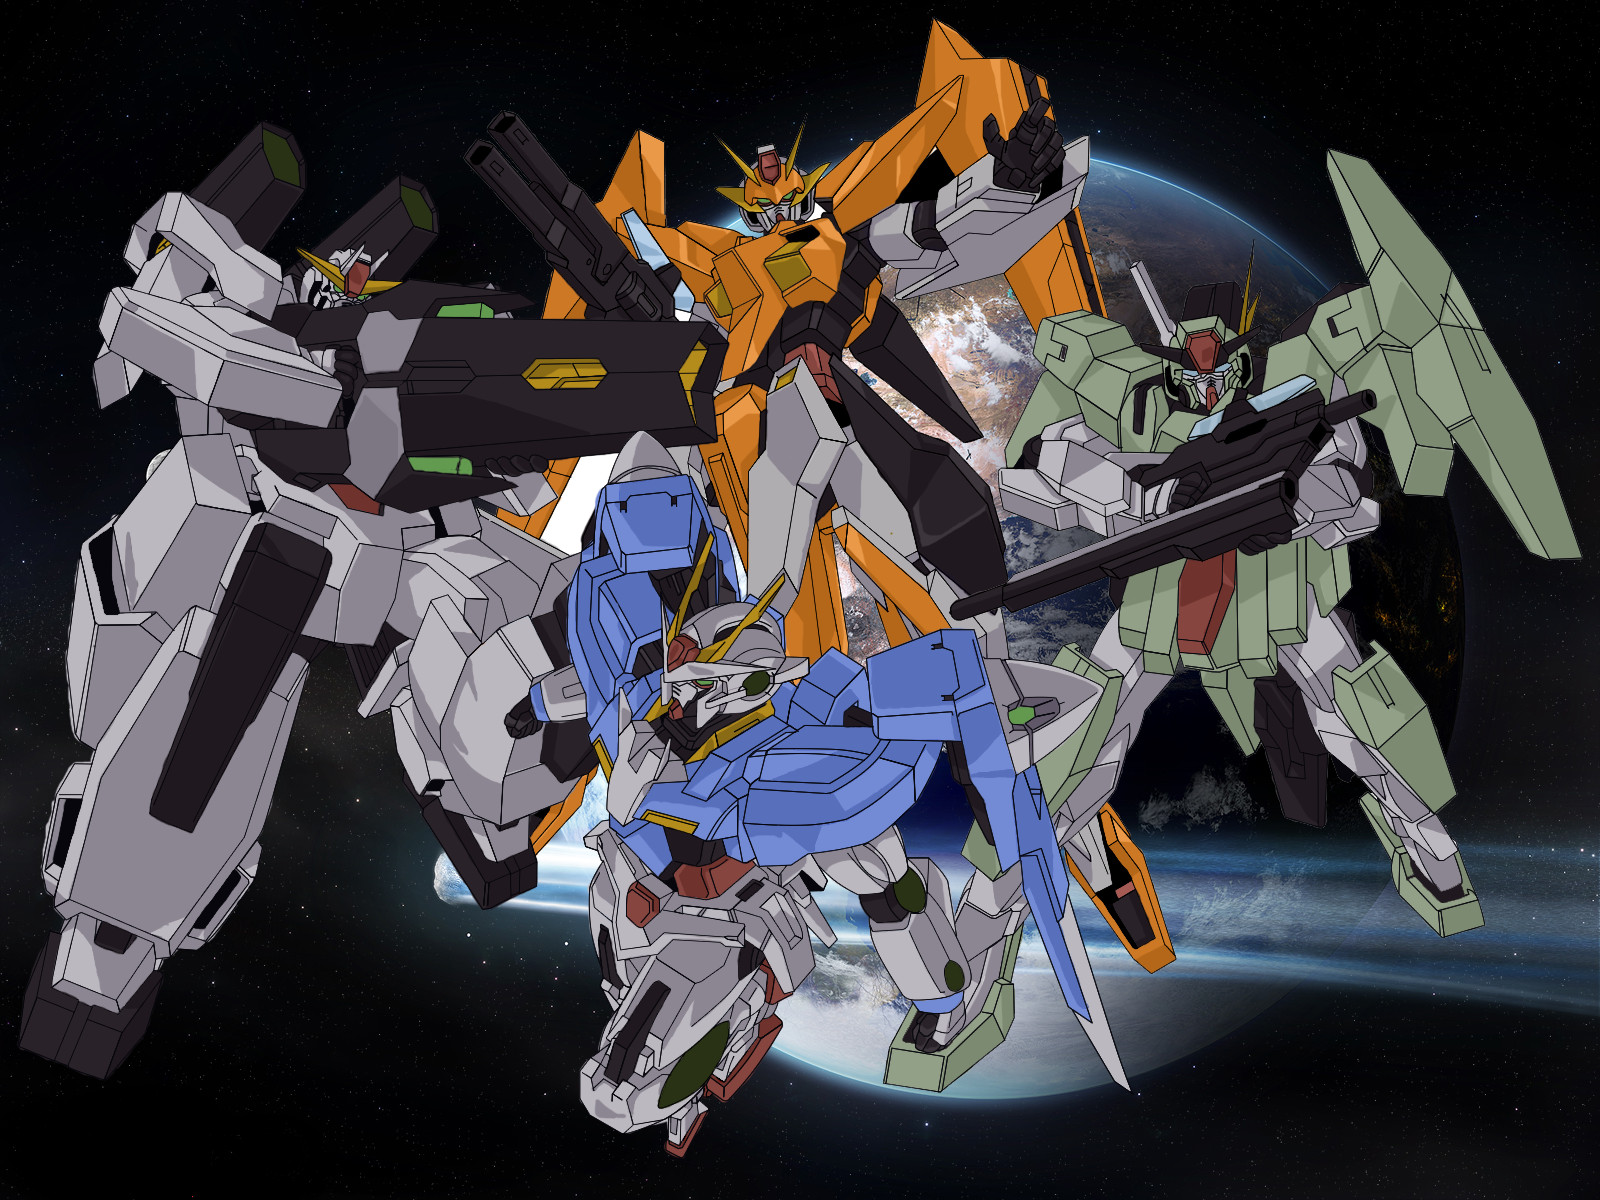 Related Pictures gundam anime iphone wallpaper 1600x1200